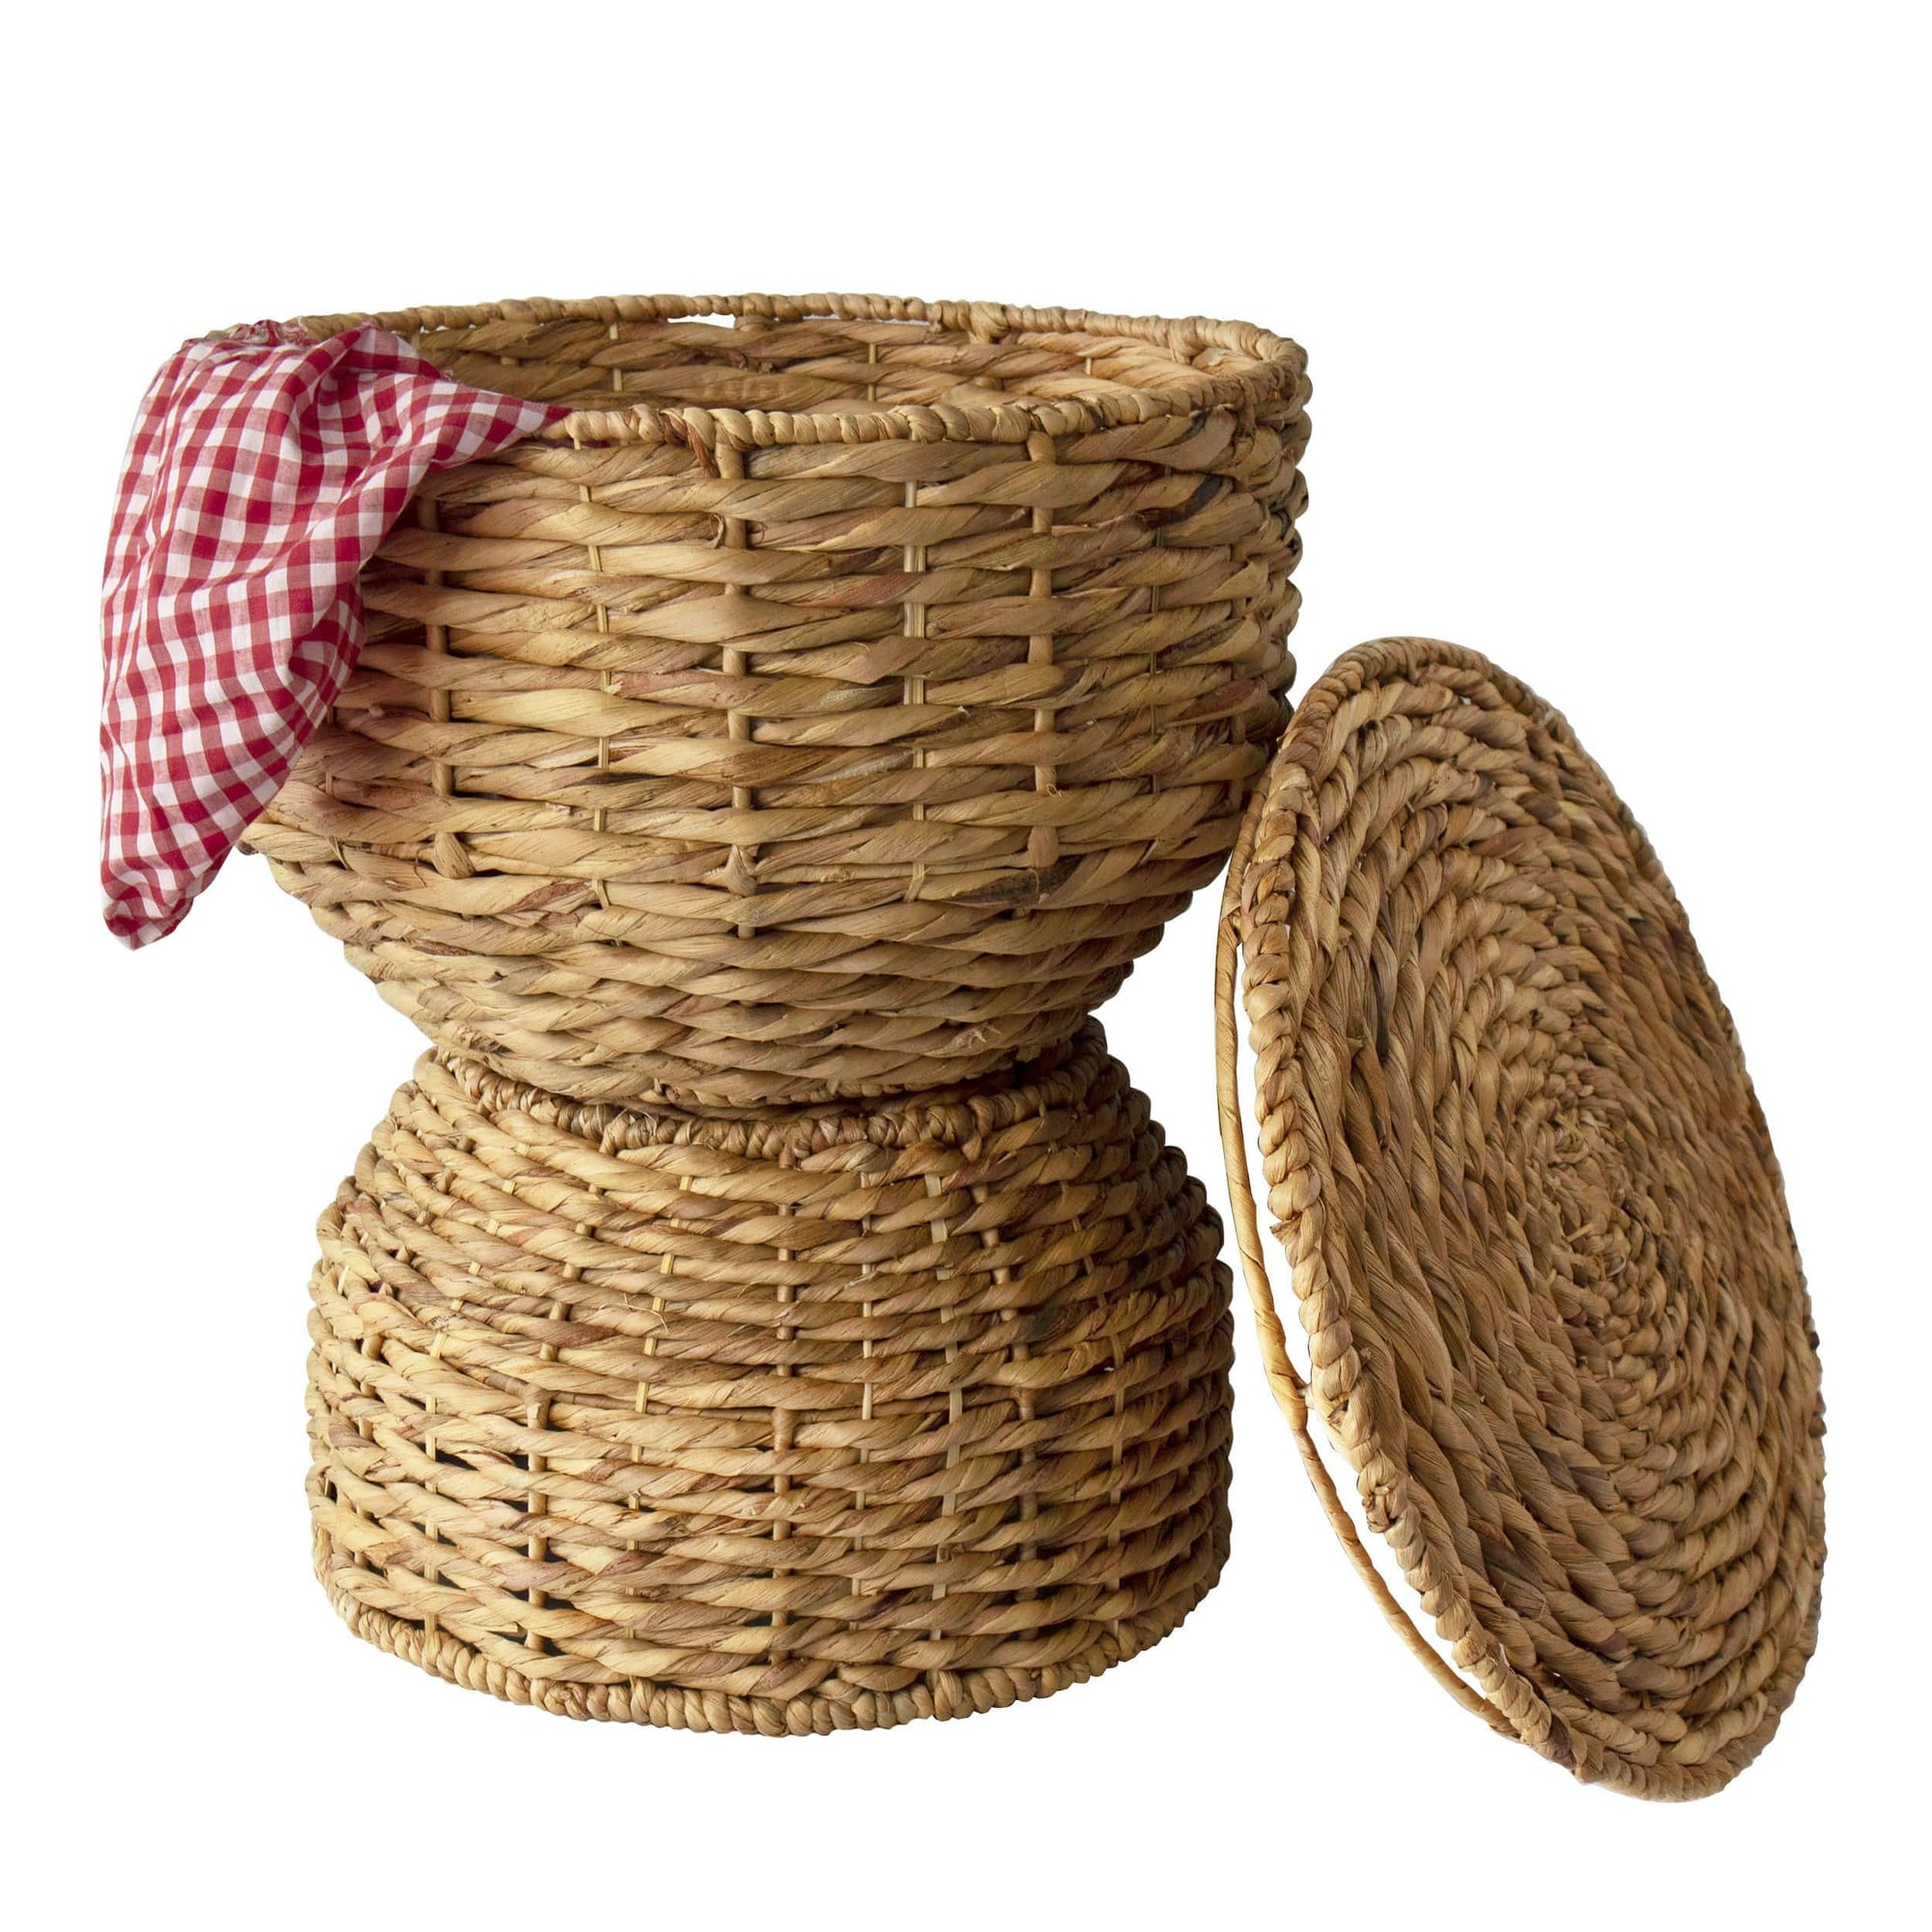 Made Terra Storage basket 2-tier Multipurpose Hand Woven Water Hyacinth Wicker Basket for Laundry, Storage Bins with Lid